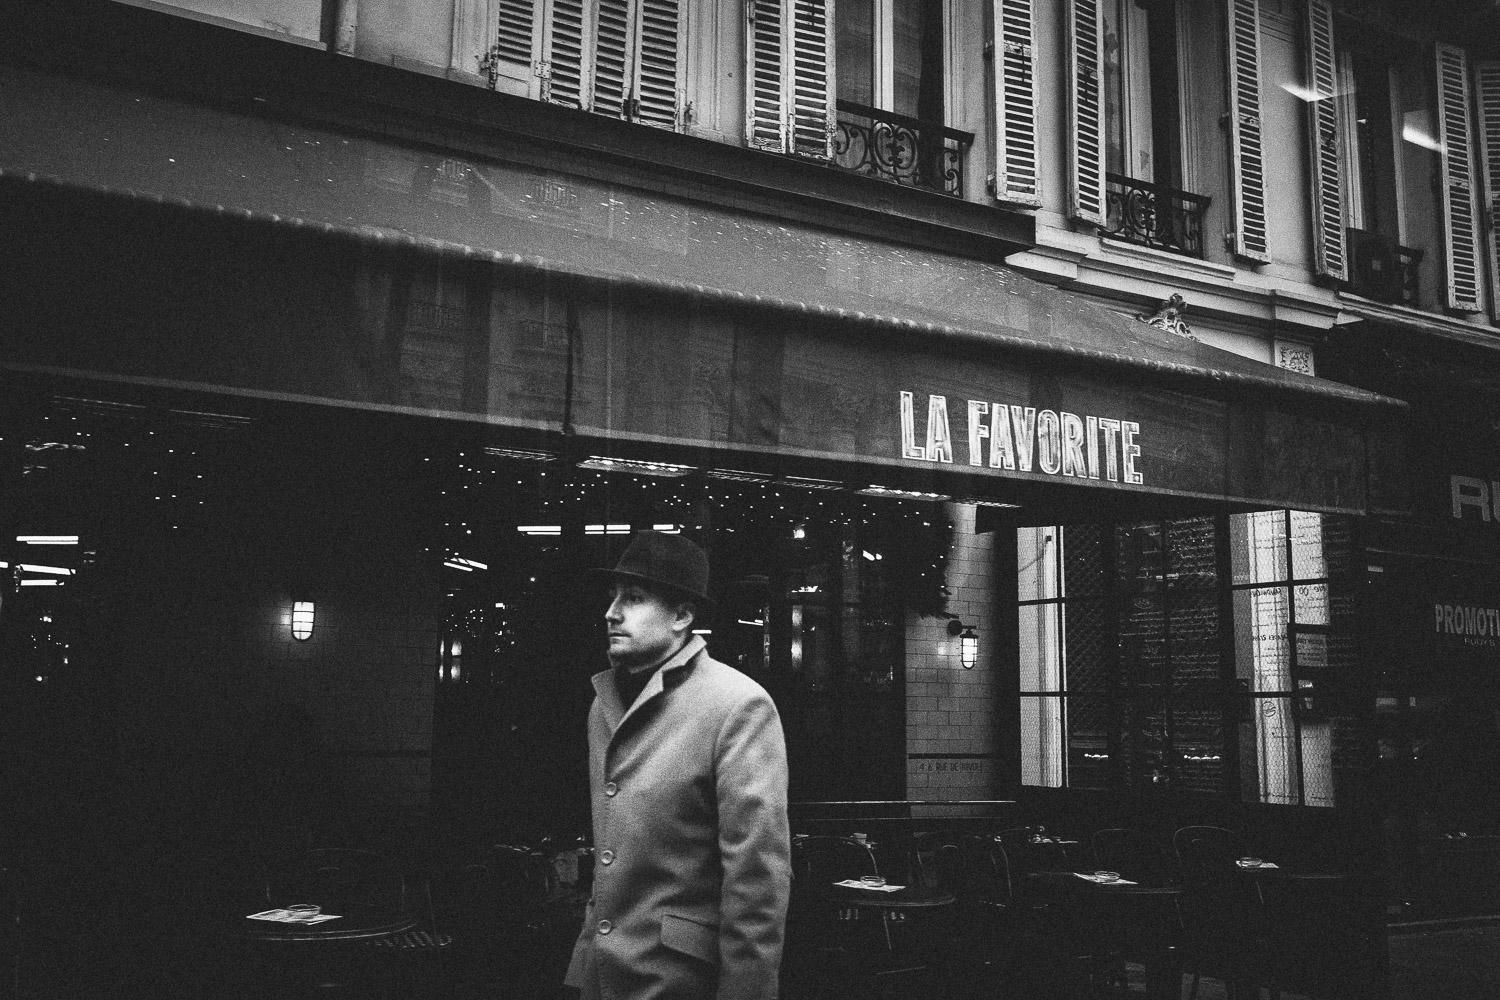 Cafe La Favorite, Paris, France. Intimate and timeless black & white images from the streets of a seducing city.